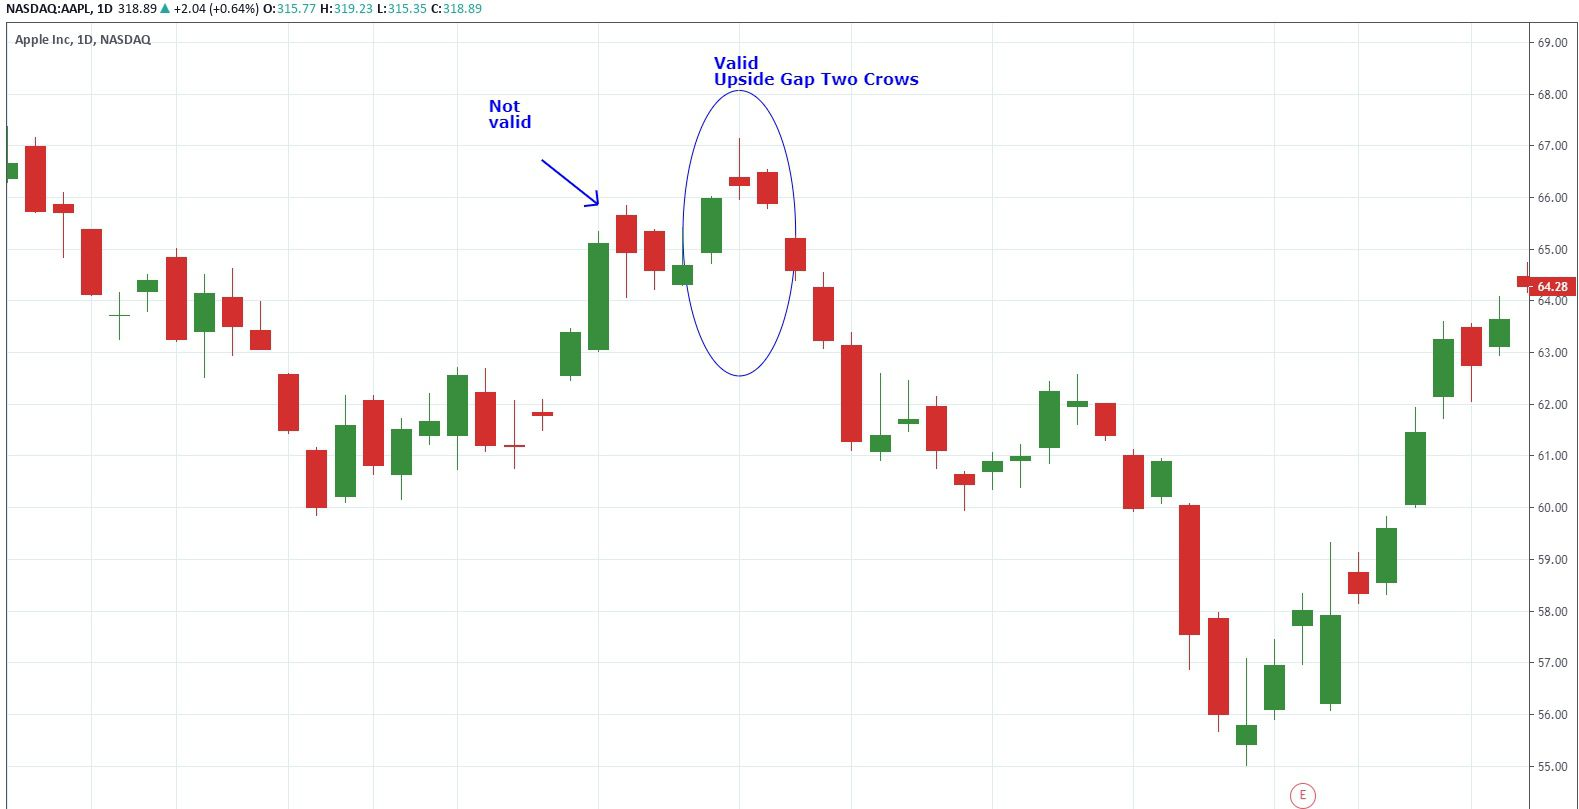 Upside gap two crows on chart of Apple Inc.